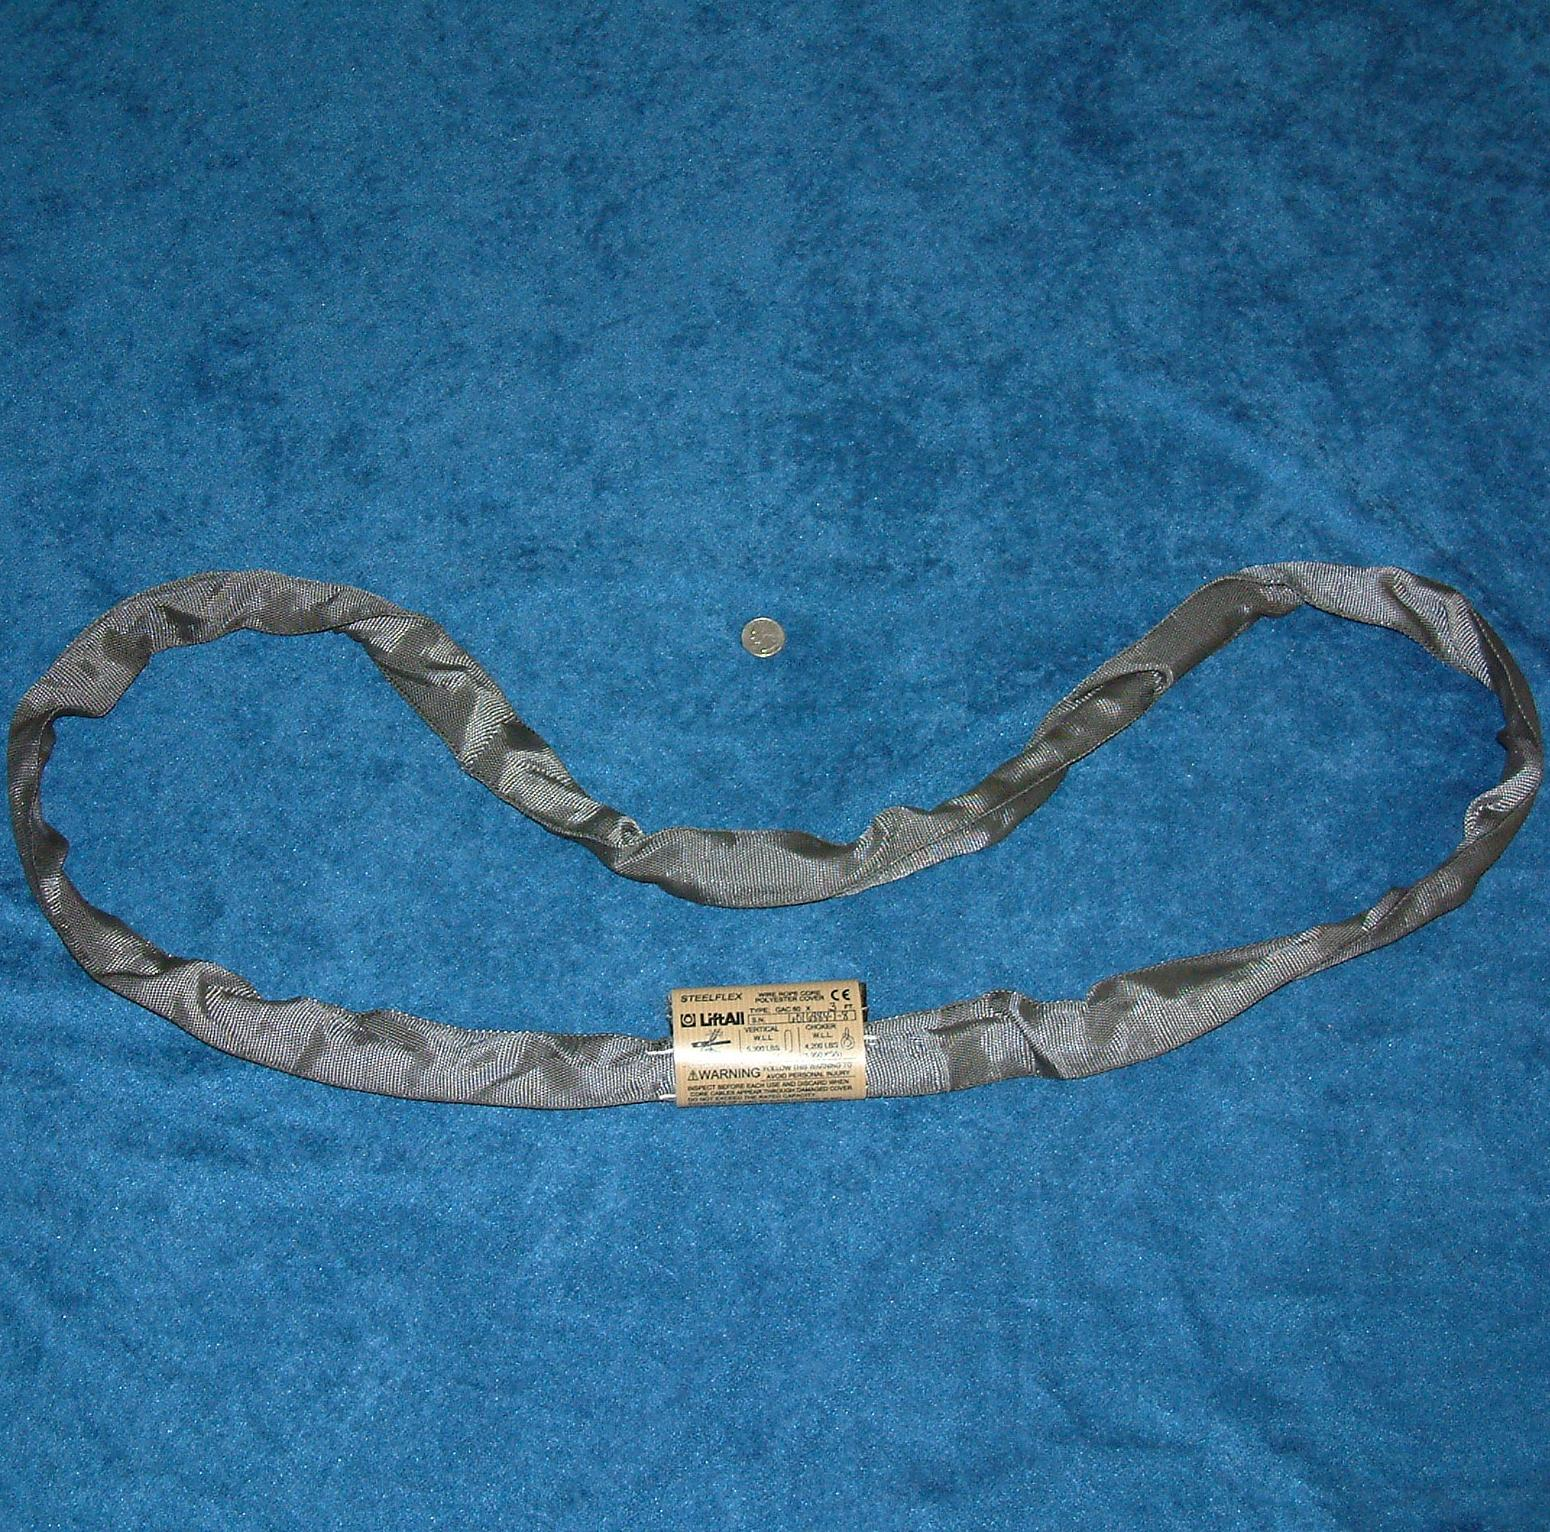 3 Foot Steelflex Roundsling